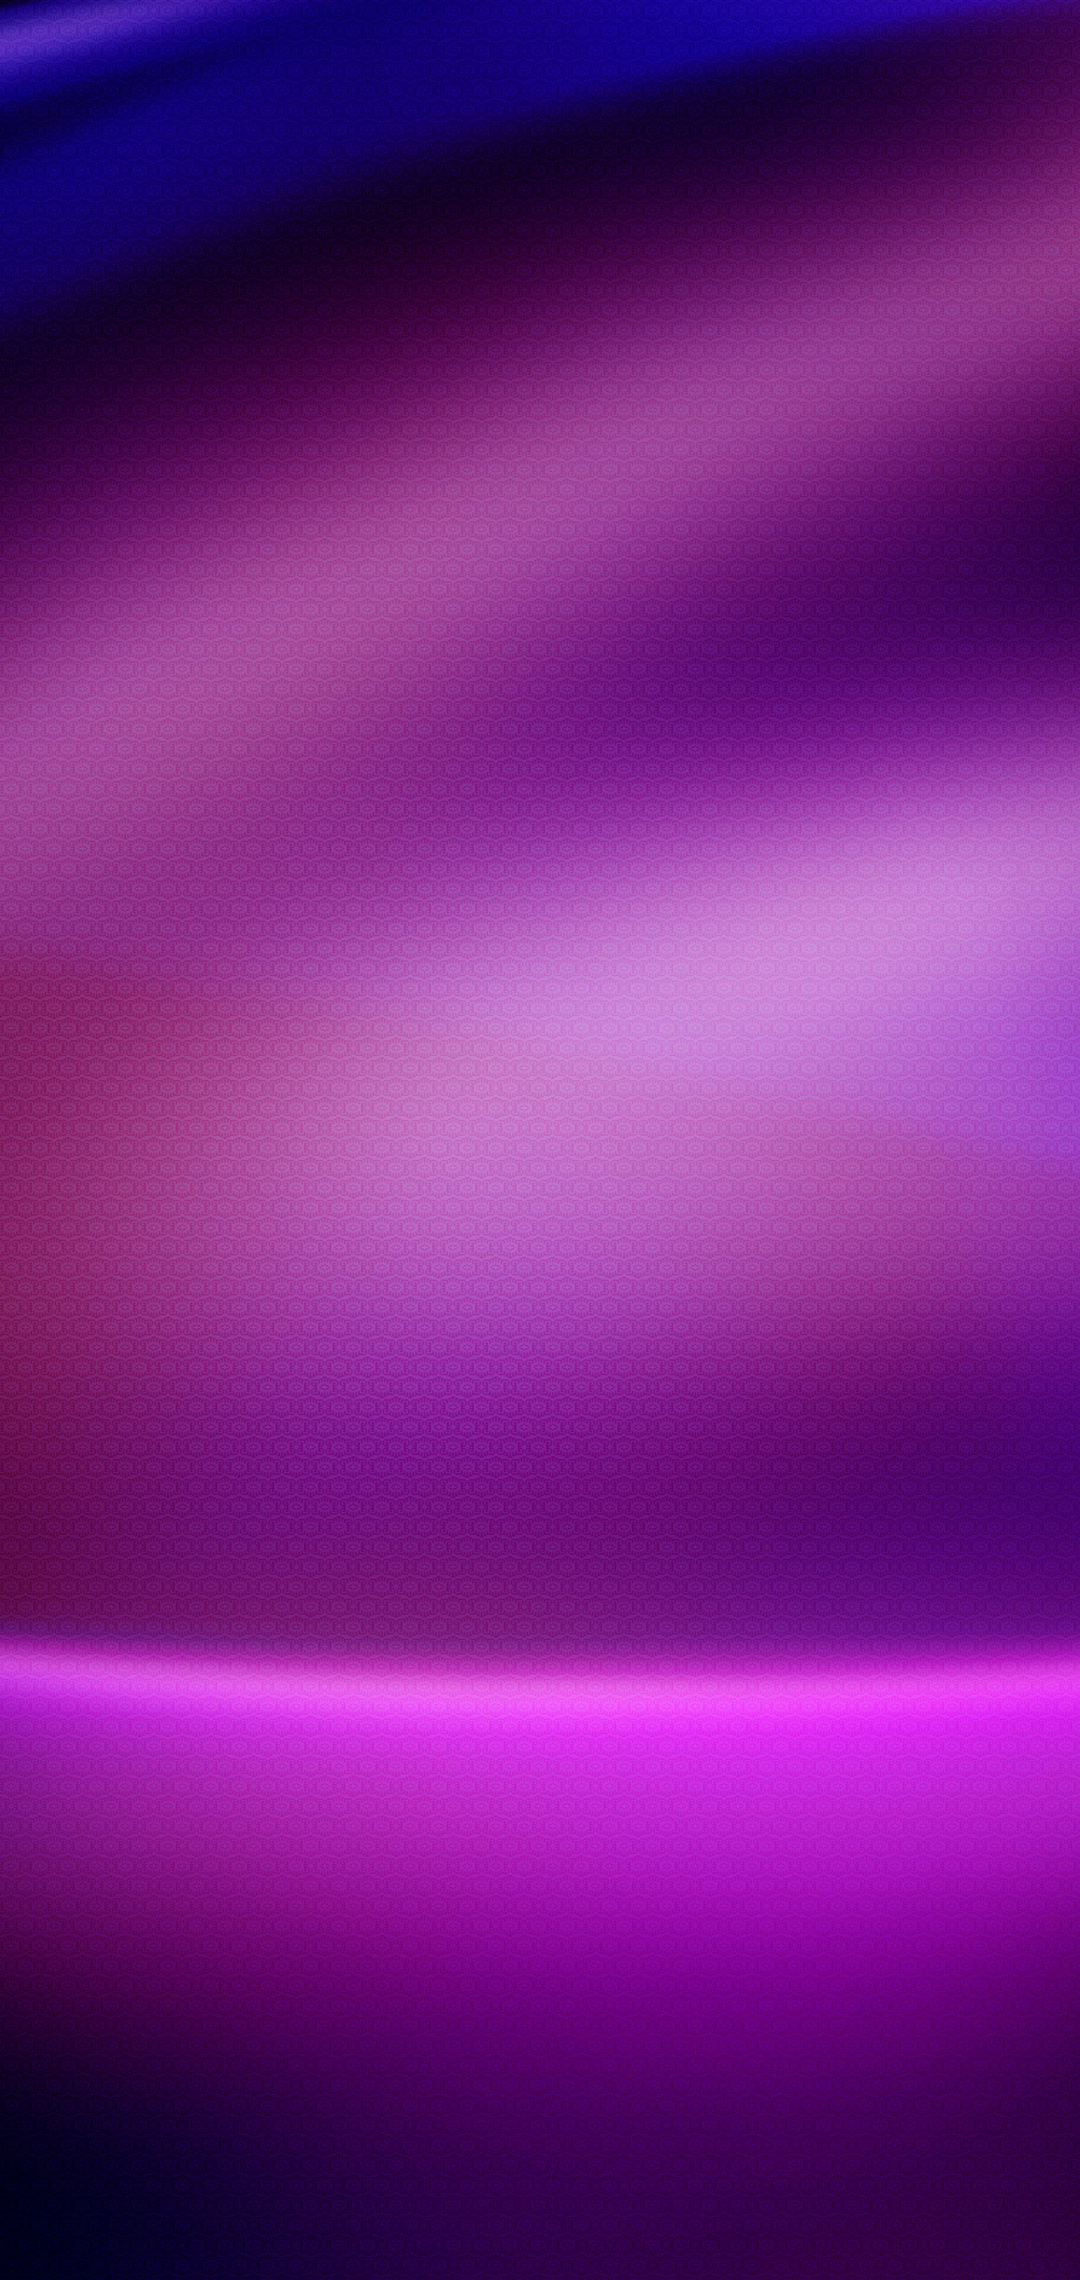 purple-abstract-dotted-background-ta.jpg